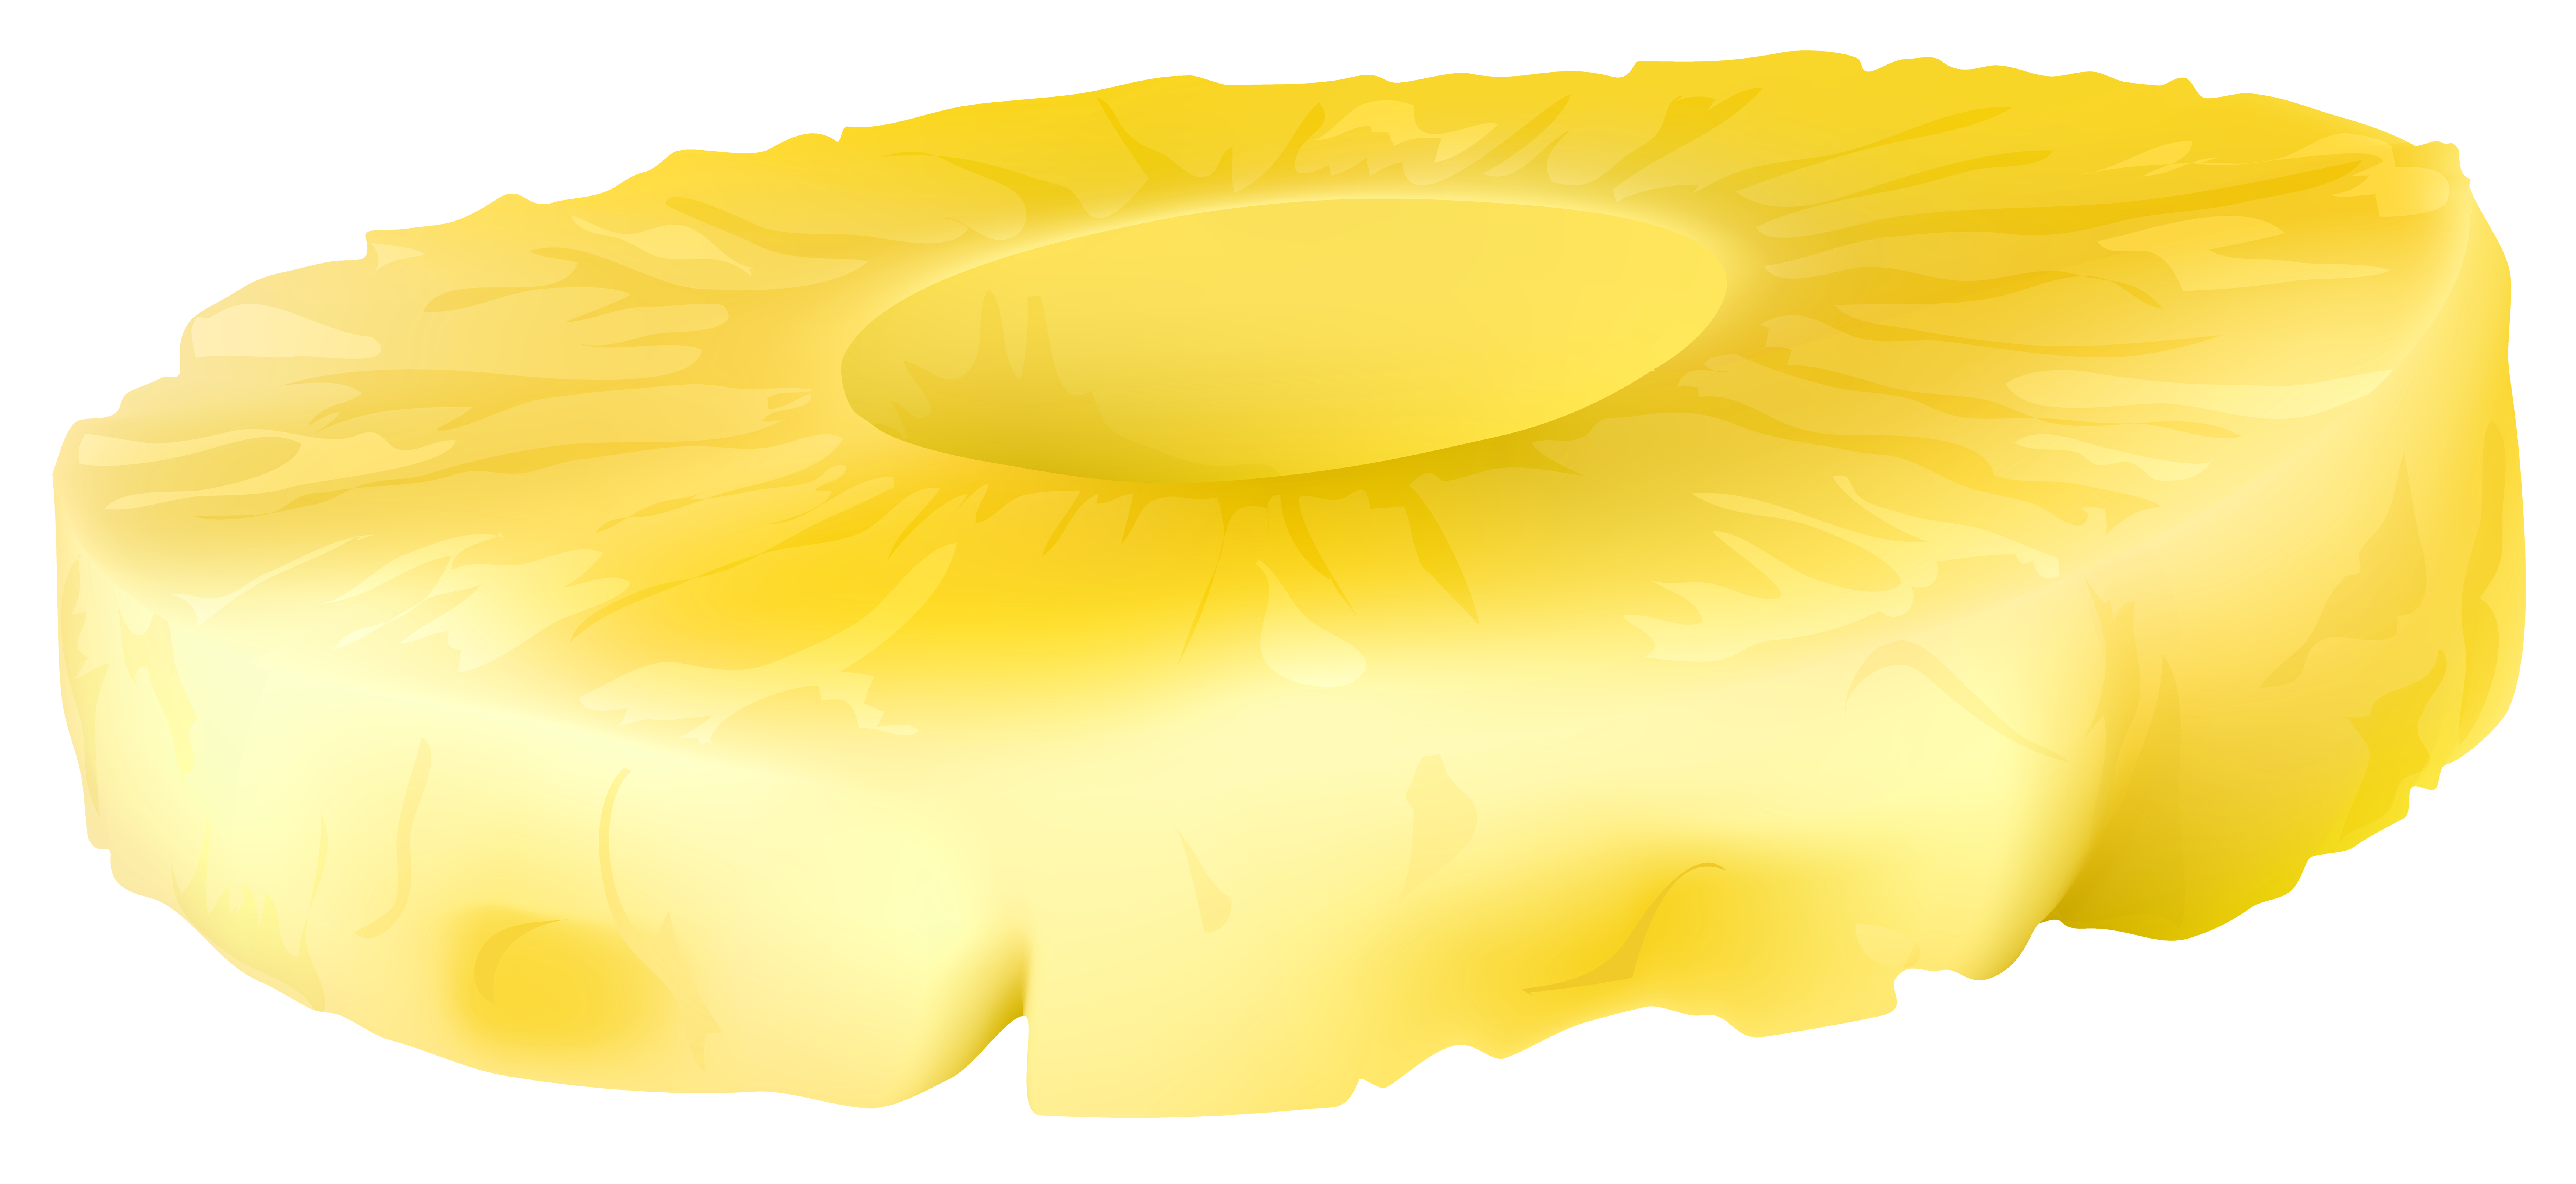 Pineapple clipart pineapple slice. Png clip art image